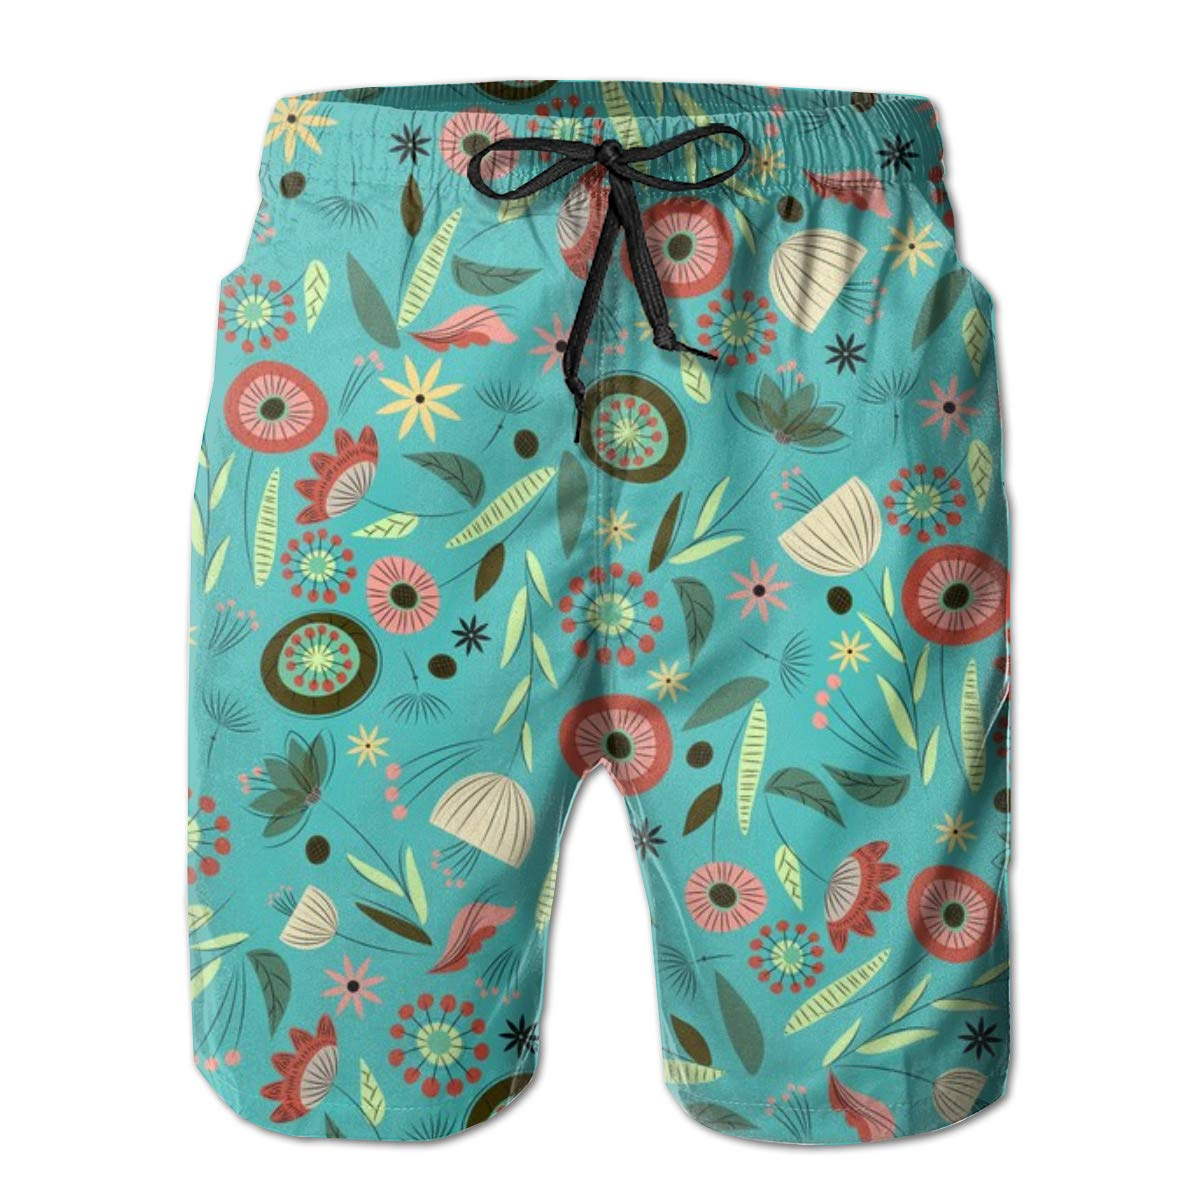 Vintage Floral Blue Mens Swimming Trousers Quick-Drying Beach Shorts Polyester